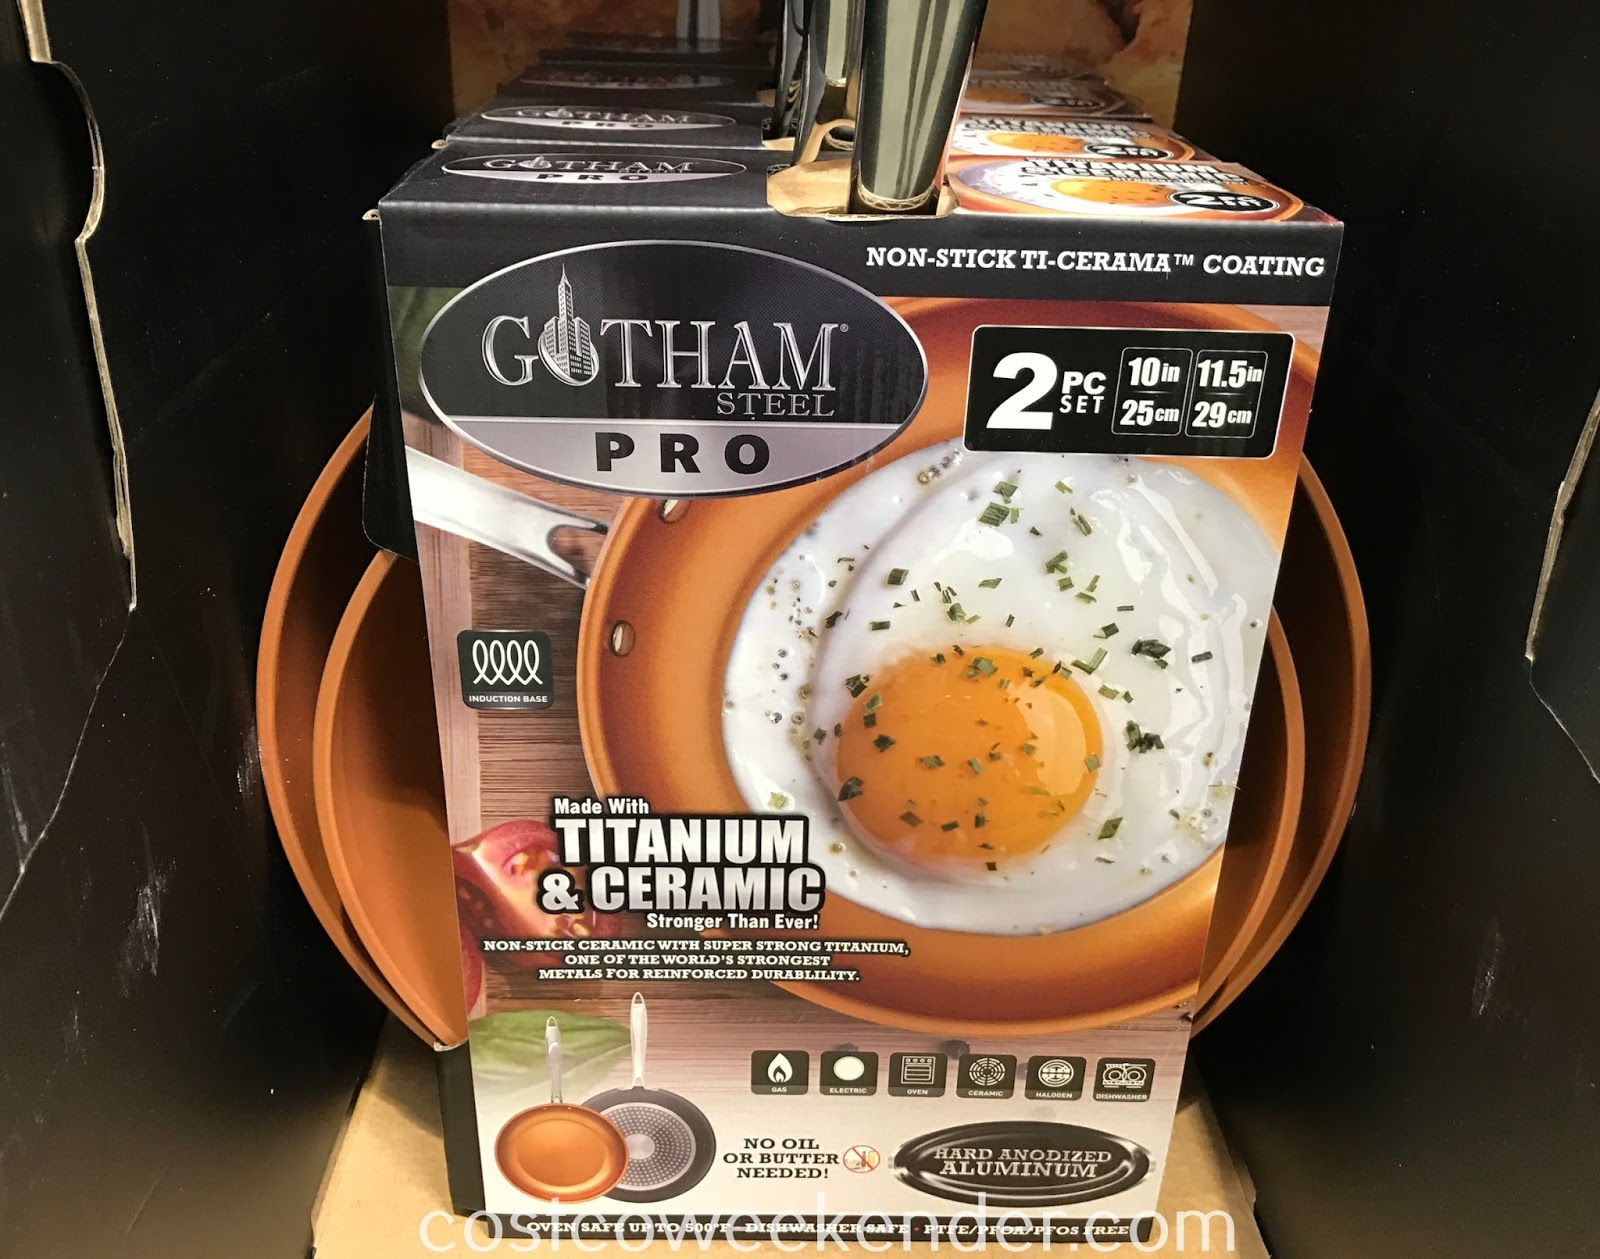 Cook healthier meals in the kitchen with Gotham Steel Pro Ceramic Non-Stick Frying Pans (2 piece set)